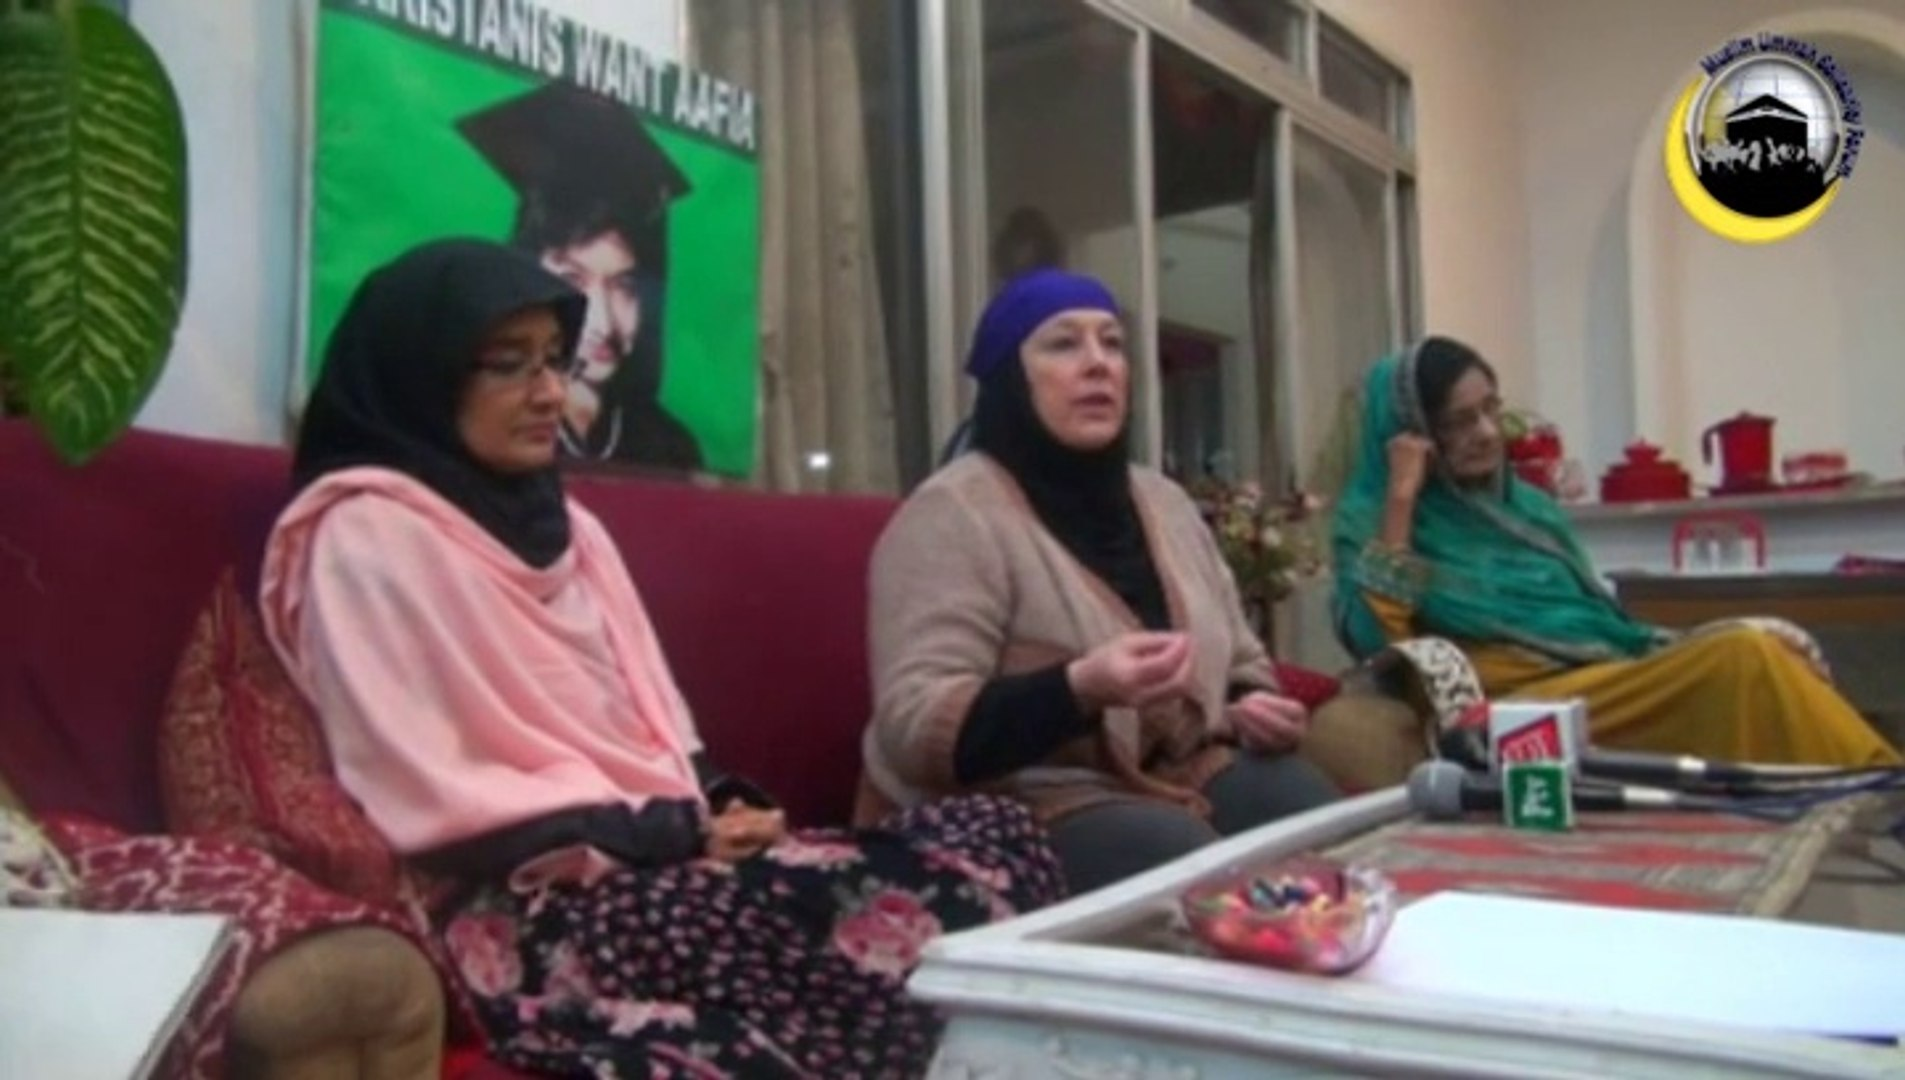 MUSF arranged a meeting of Sister Yvonne Ridley with Afia Movement